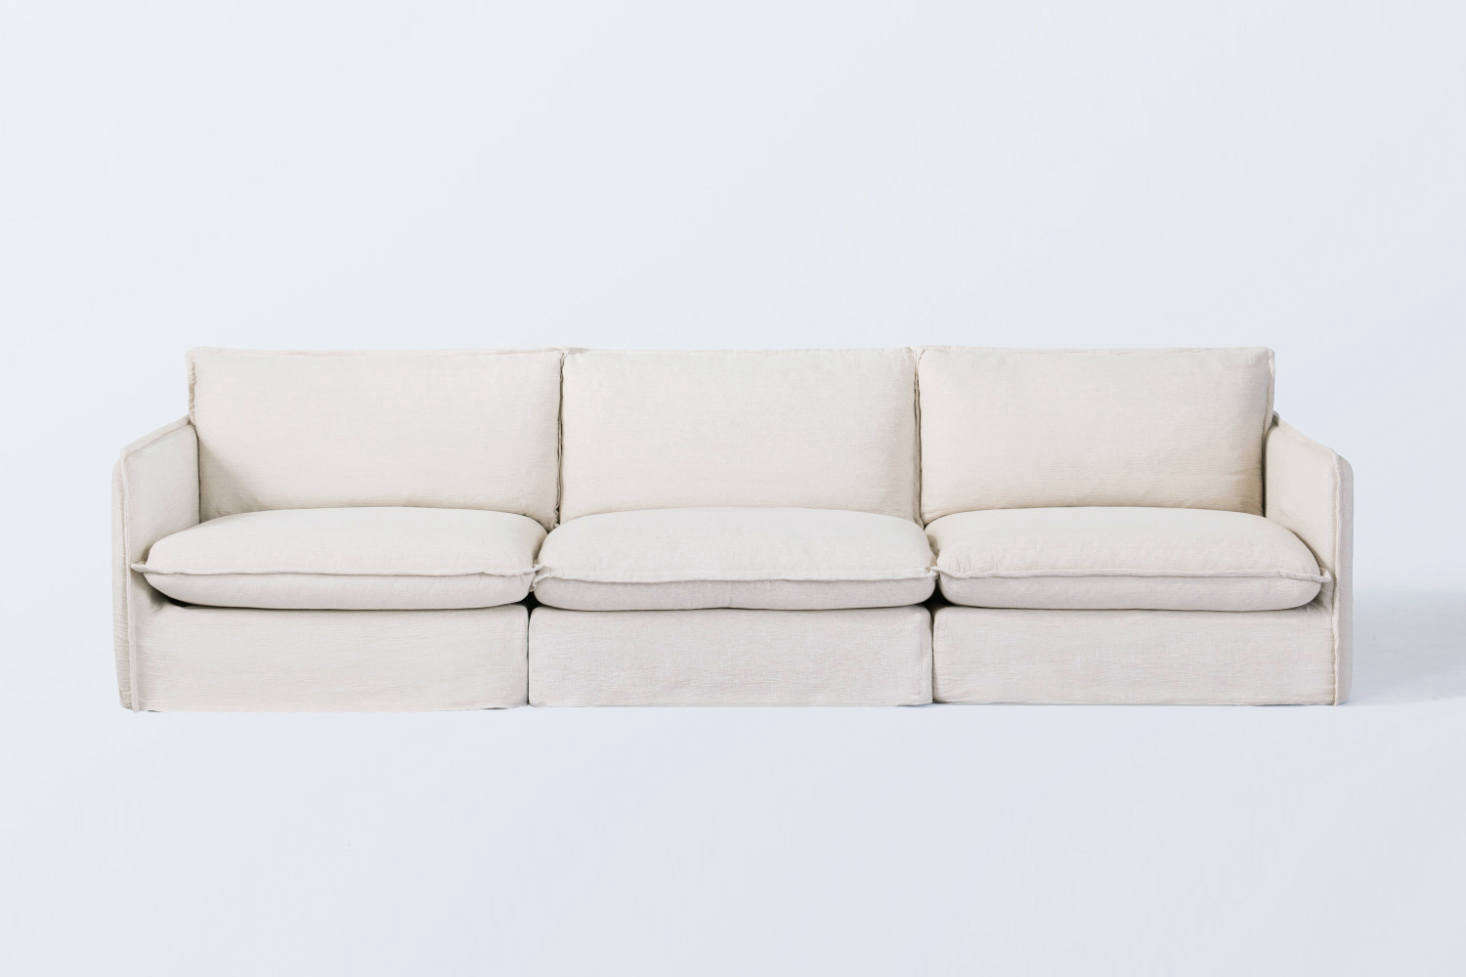 One of our favorite dependable sofas under $3,000: theSixpenny Neva Modular 3-Piece Sofa, with a kiln-dried hardwood frame, reinforced corner blocking,and feather down cushions. See Easy Pieces: 'First Sofas' Under $3,000 for nine more we like.